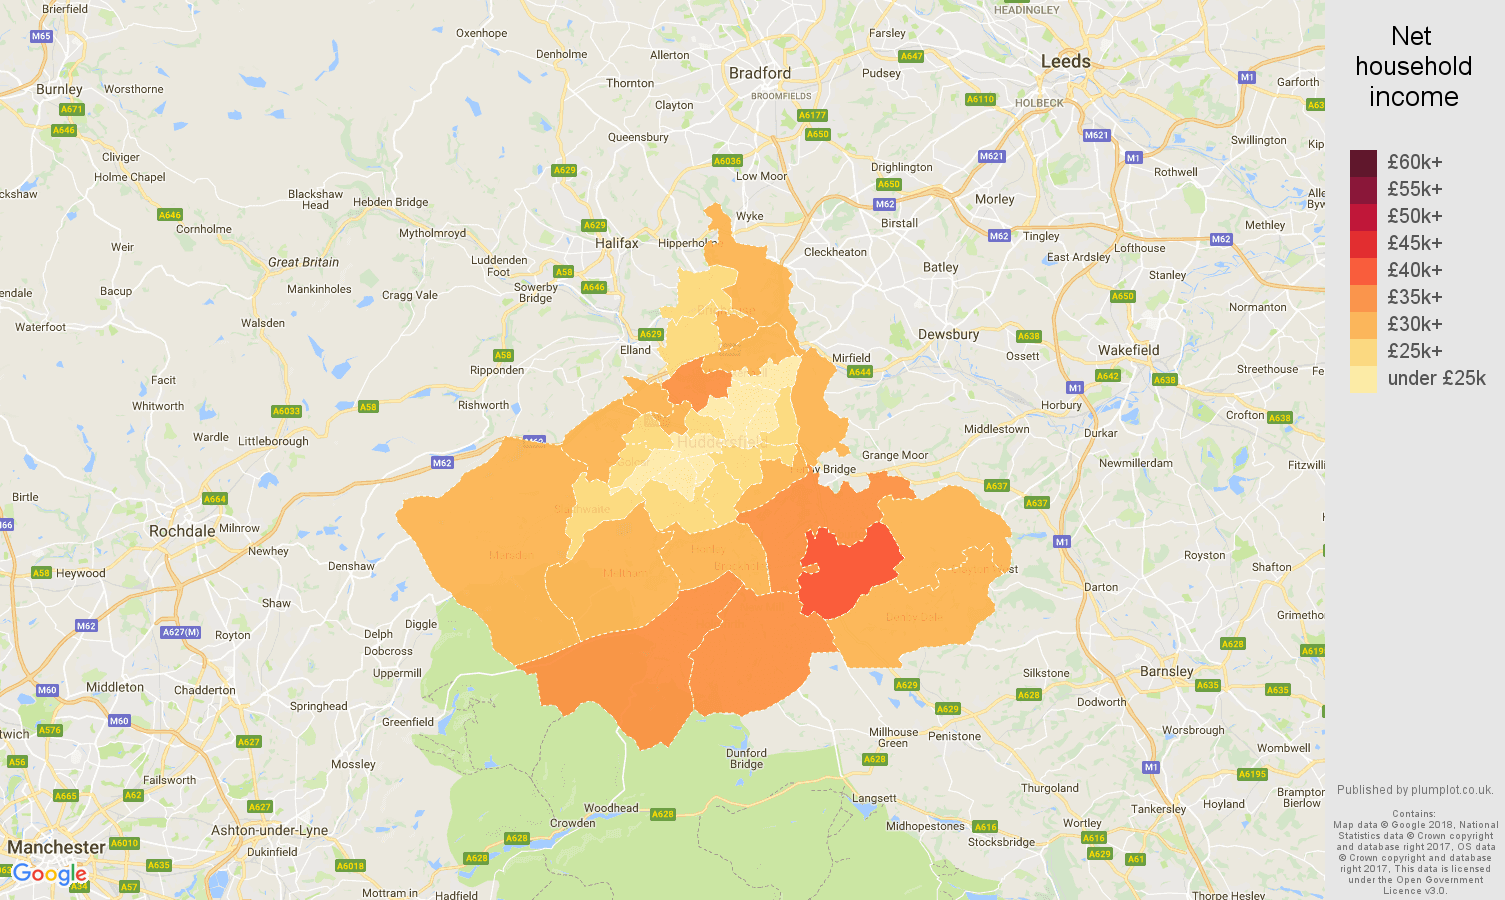 Huddersfield net household income map